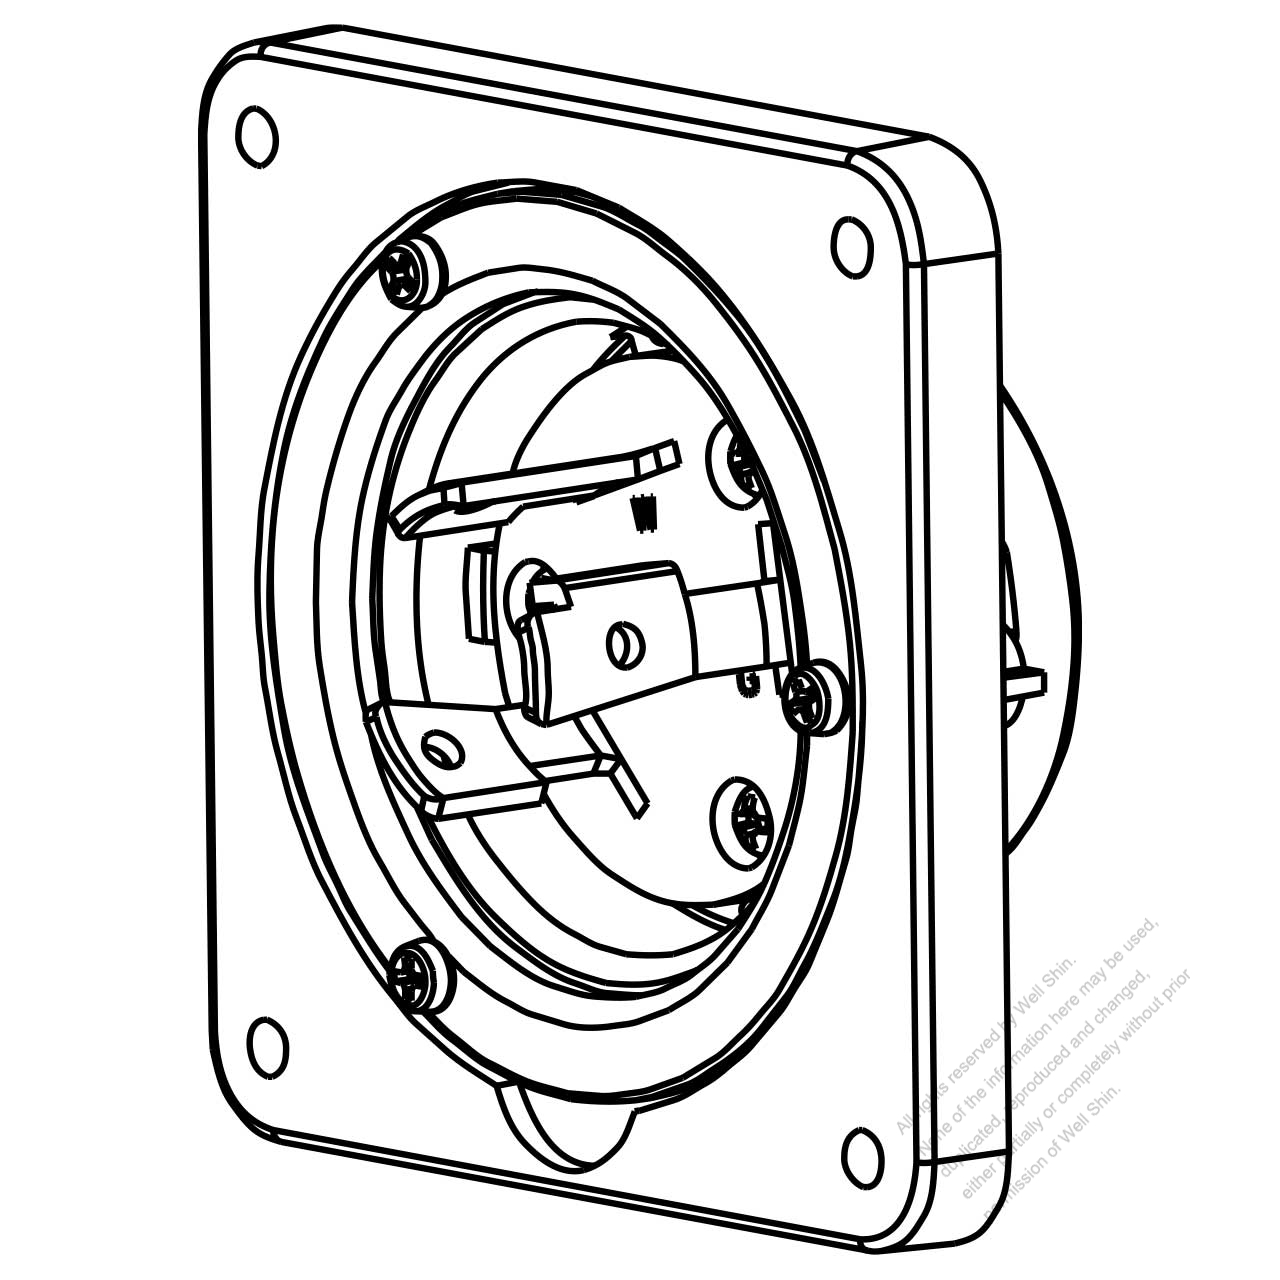 Usa Canada Locking Flanged Inlet Nema L6 30p 2 P 3 Wire Grounding 30a 250v Watertight Inlet